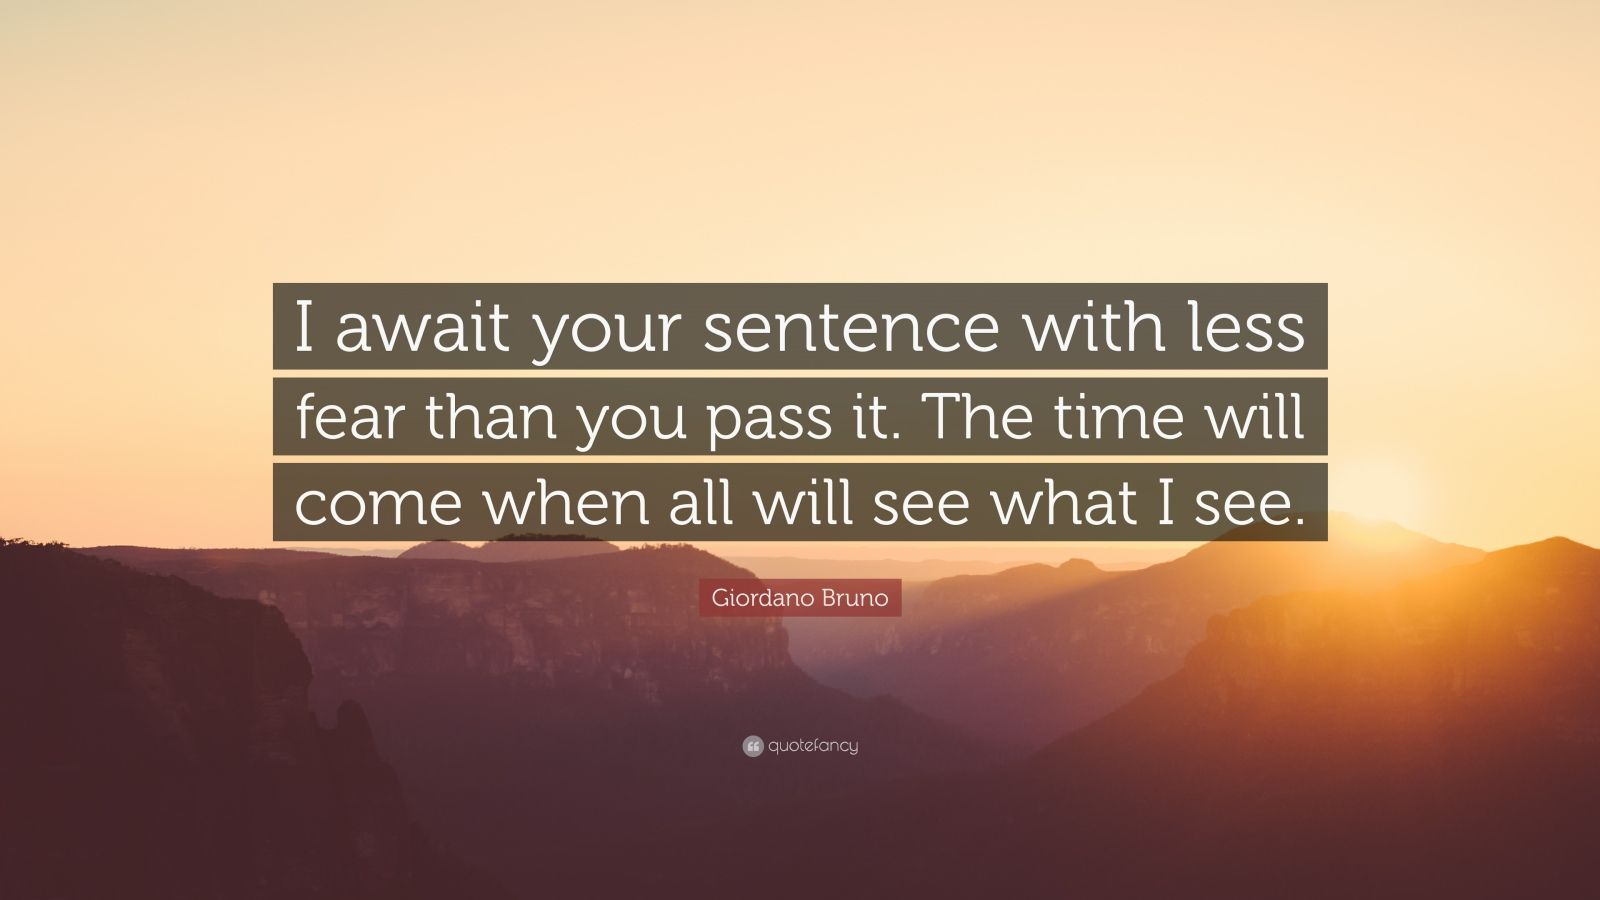 """Giordano Bruno Quote: """"I await your sentence with less fear than you pass it. The time will come when all will see what I see."""""""